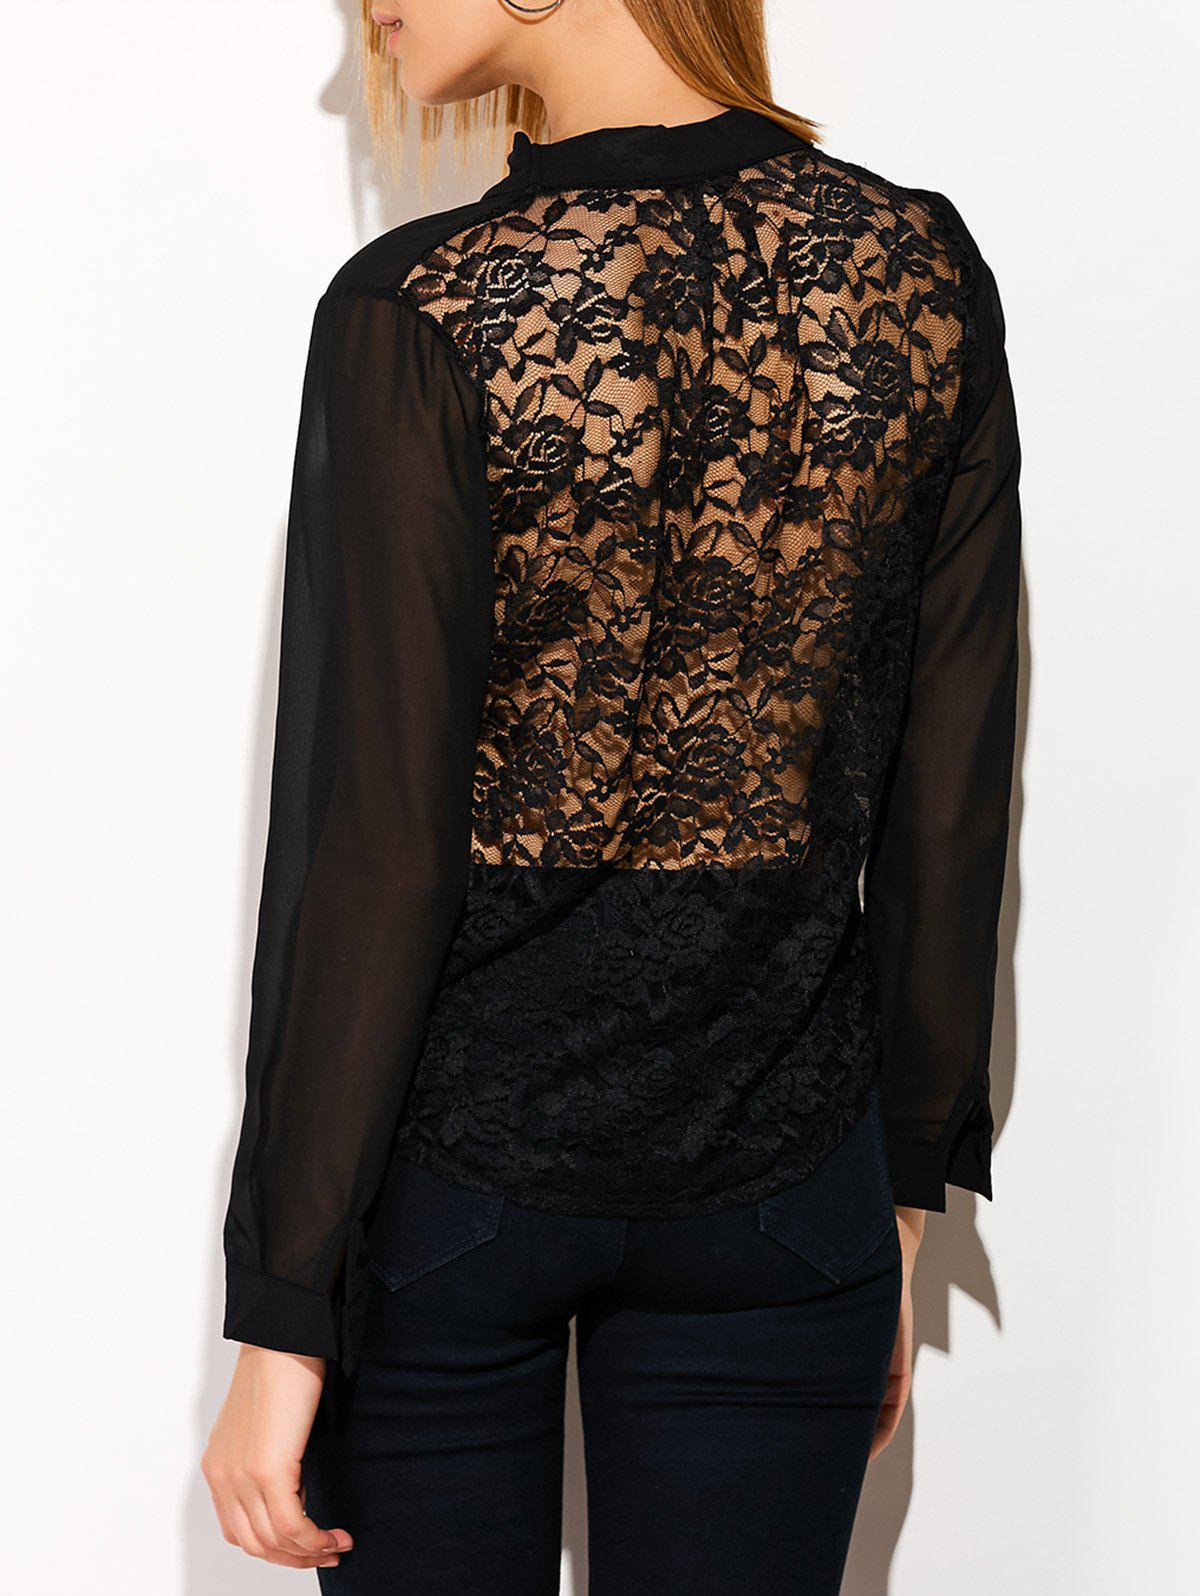 See Through Lace Back Spliced Blouse - BLACK S